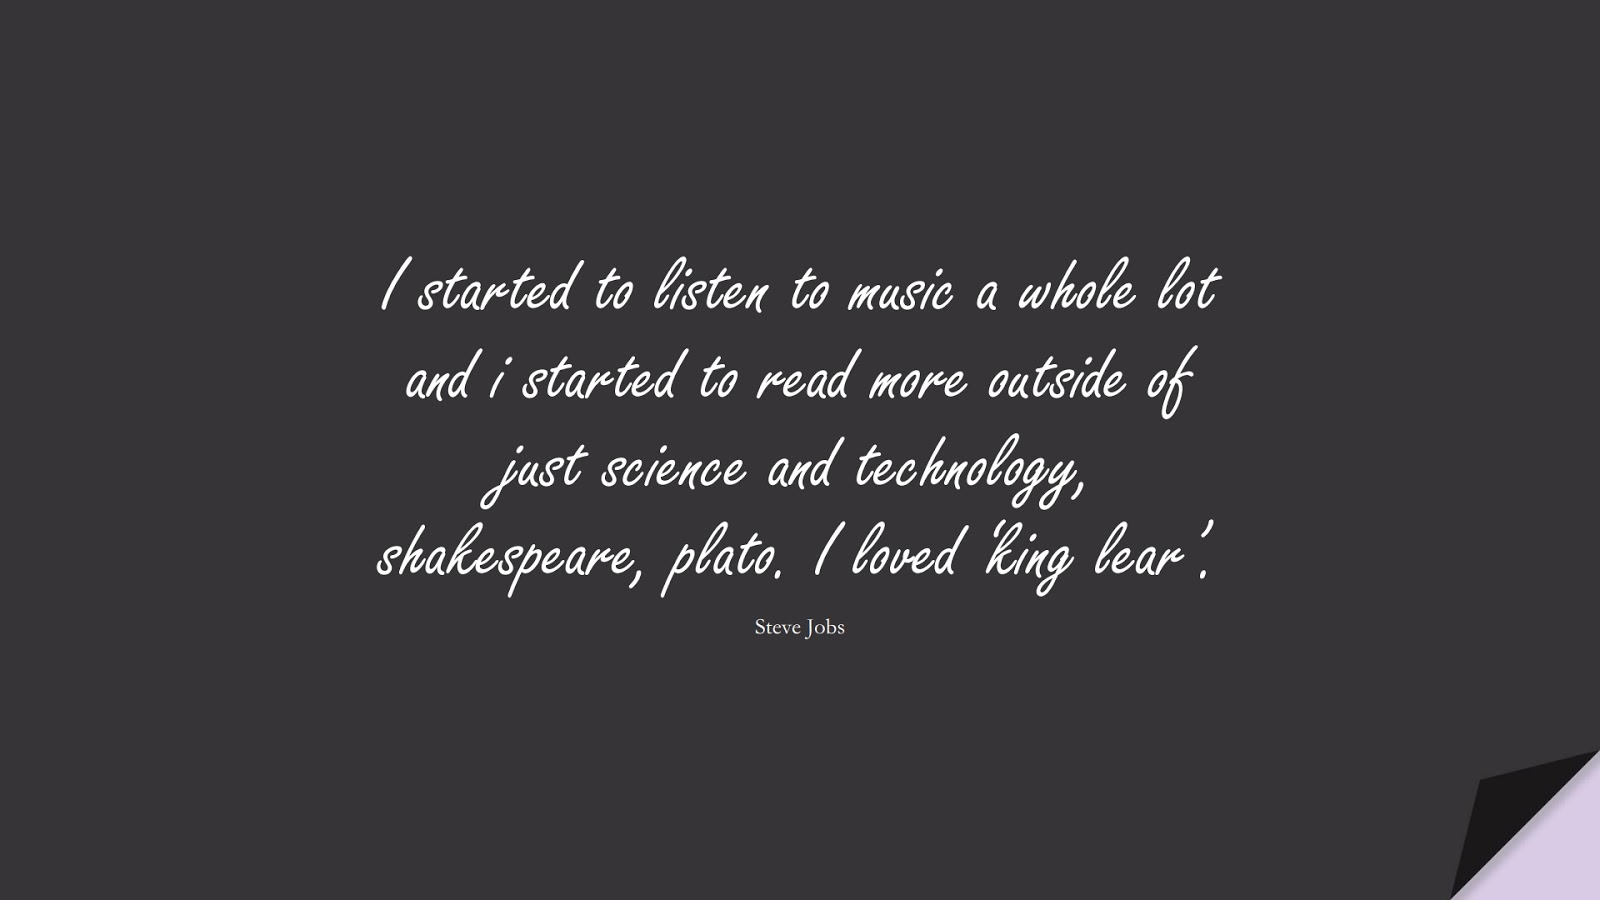 I started to listen to music a whole lot and i started to read more outside of just science and technology, shakespeare, plato. I loved 'king lear'. (Steve Jobs);  #SteveJobsQuotes